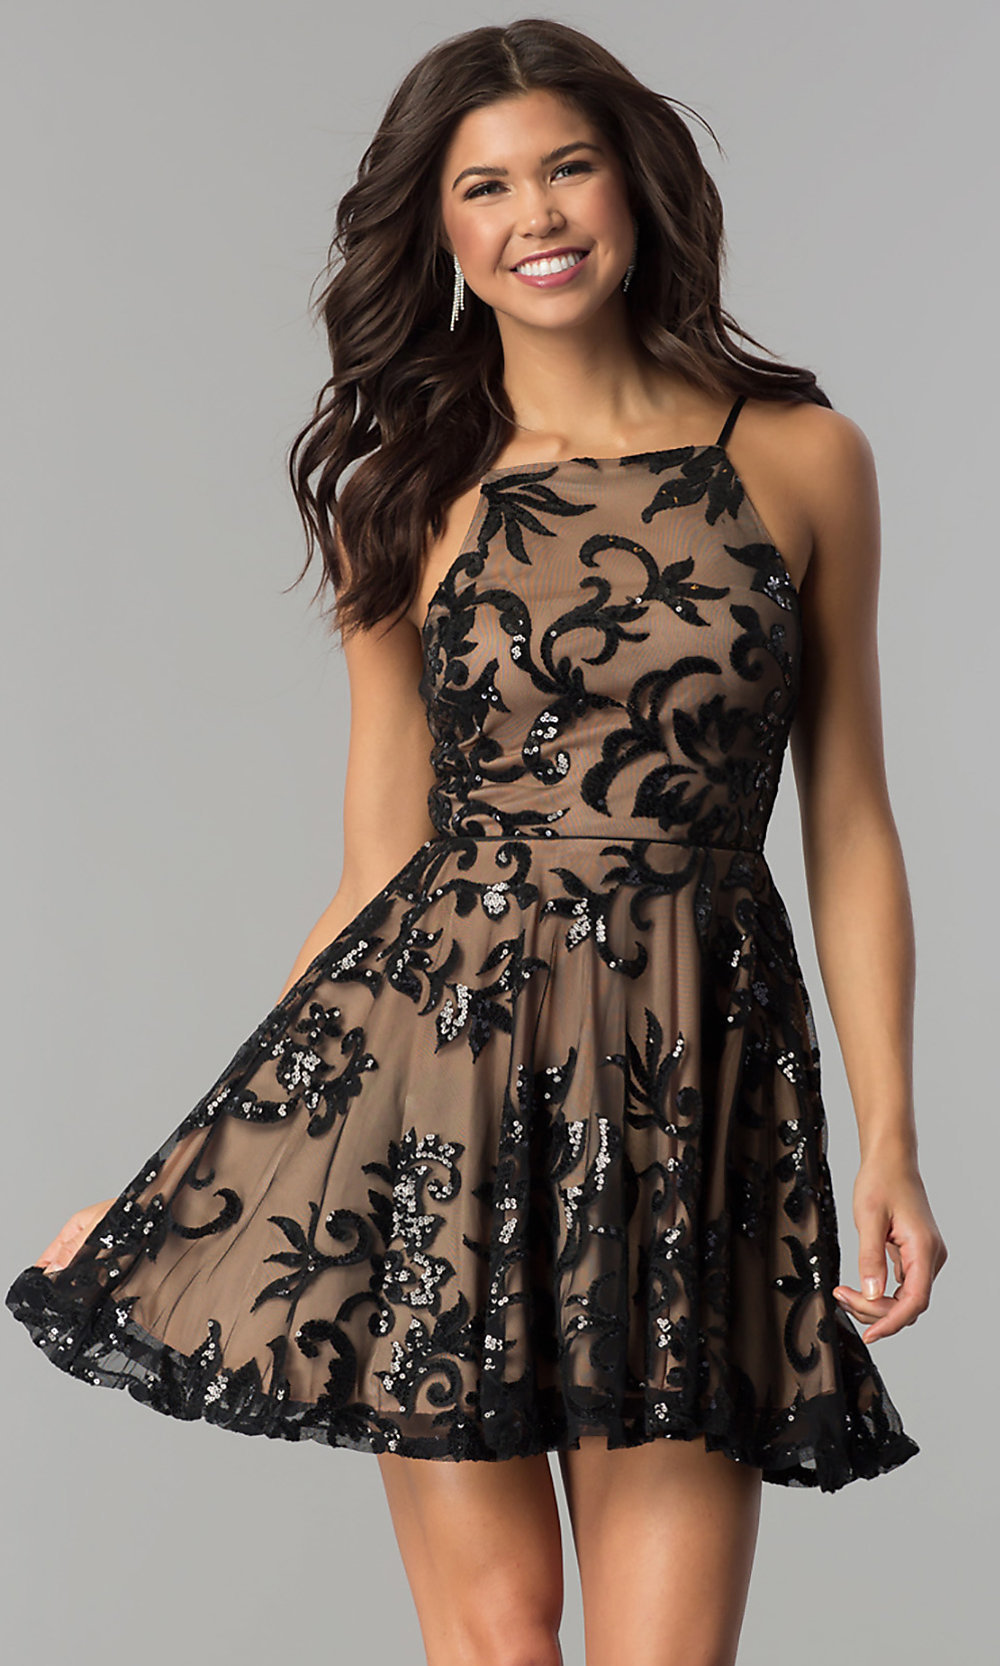 Black-Sequin Short Homecoming Party Dress - PromGirl